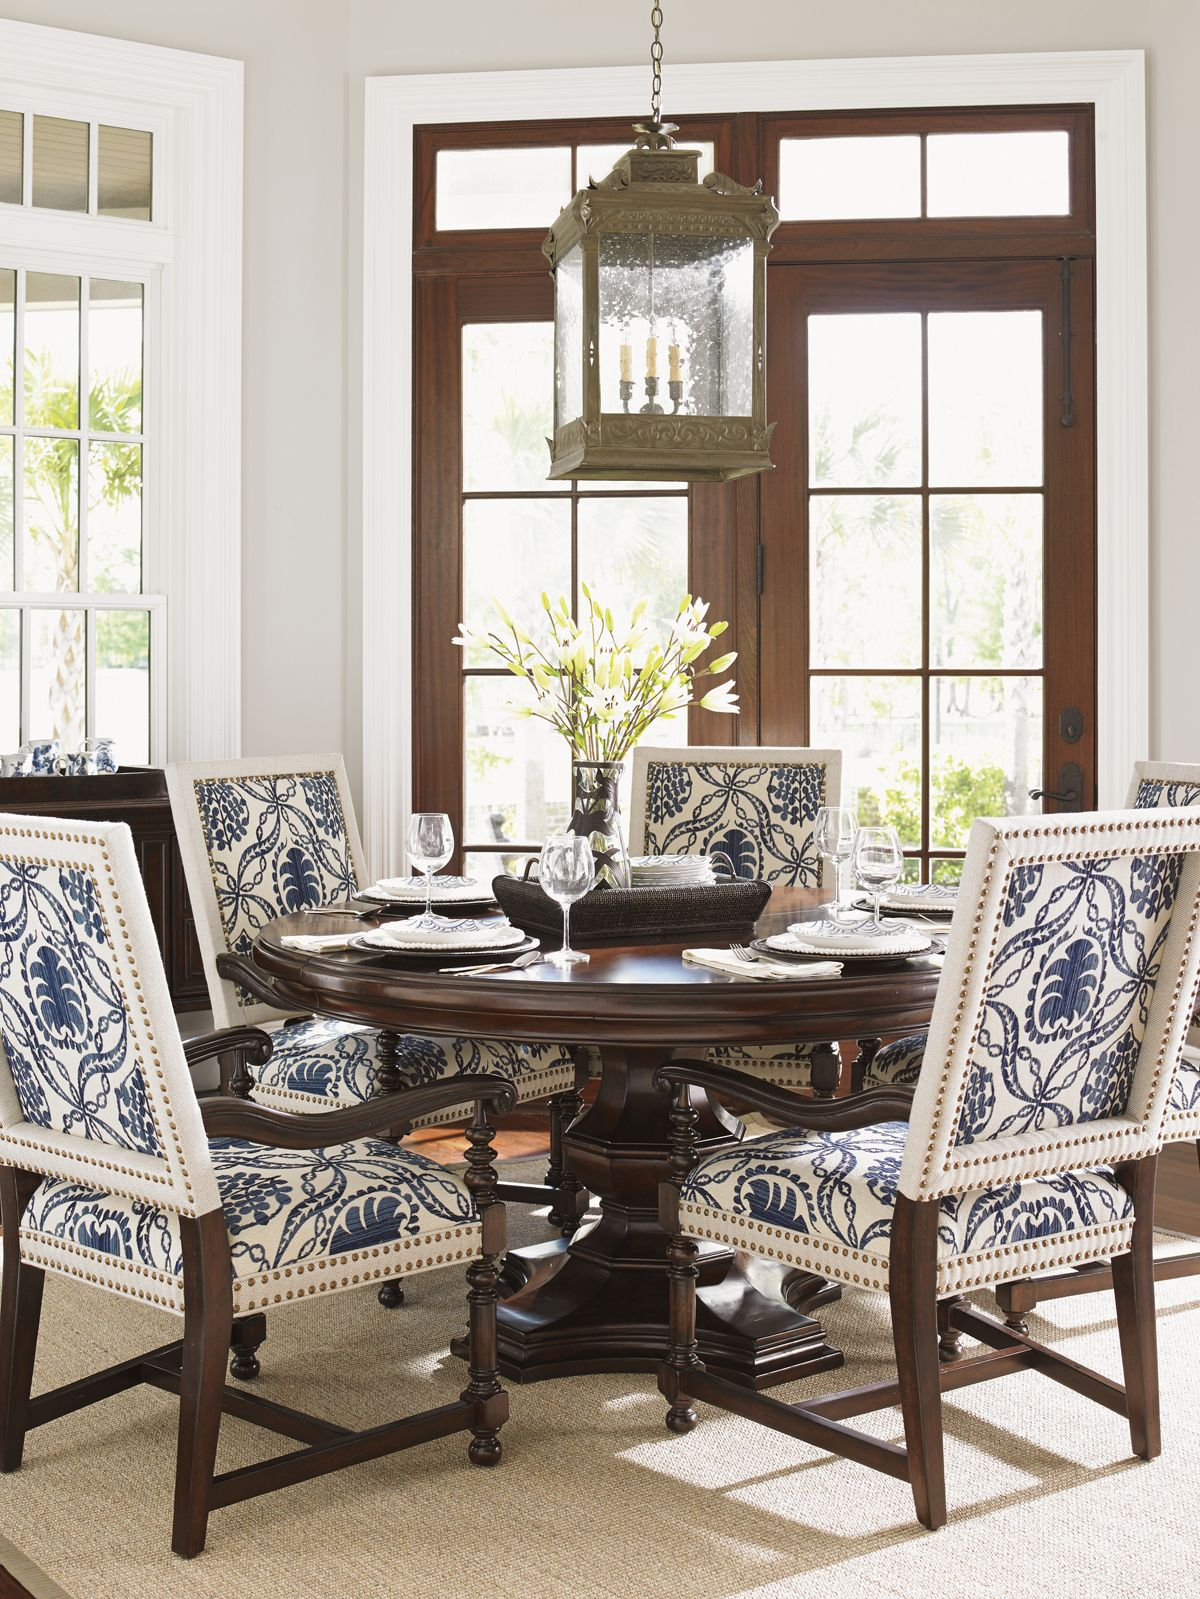 Find A Store Near You That Carries Lexington Home Brands, Tommy Bahama  Home, Tommy Bahama Outdoor Furniture